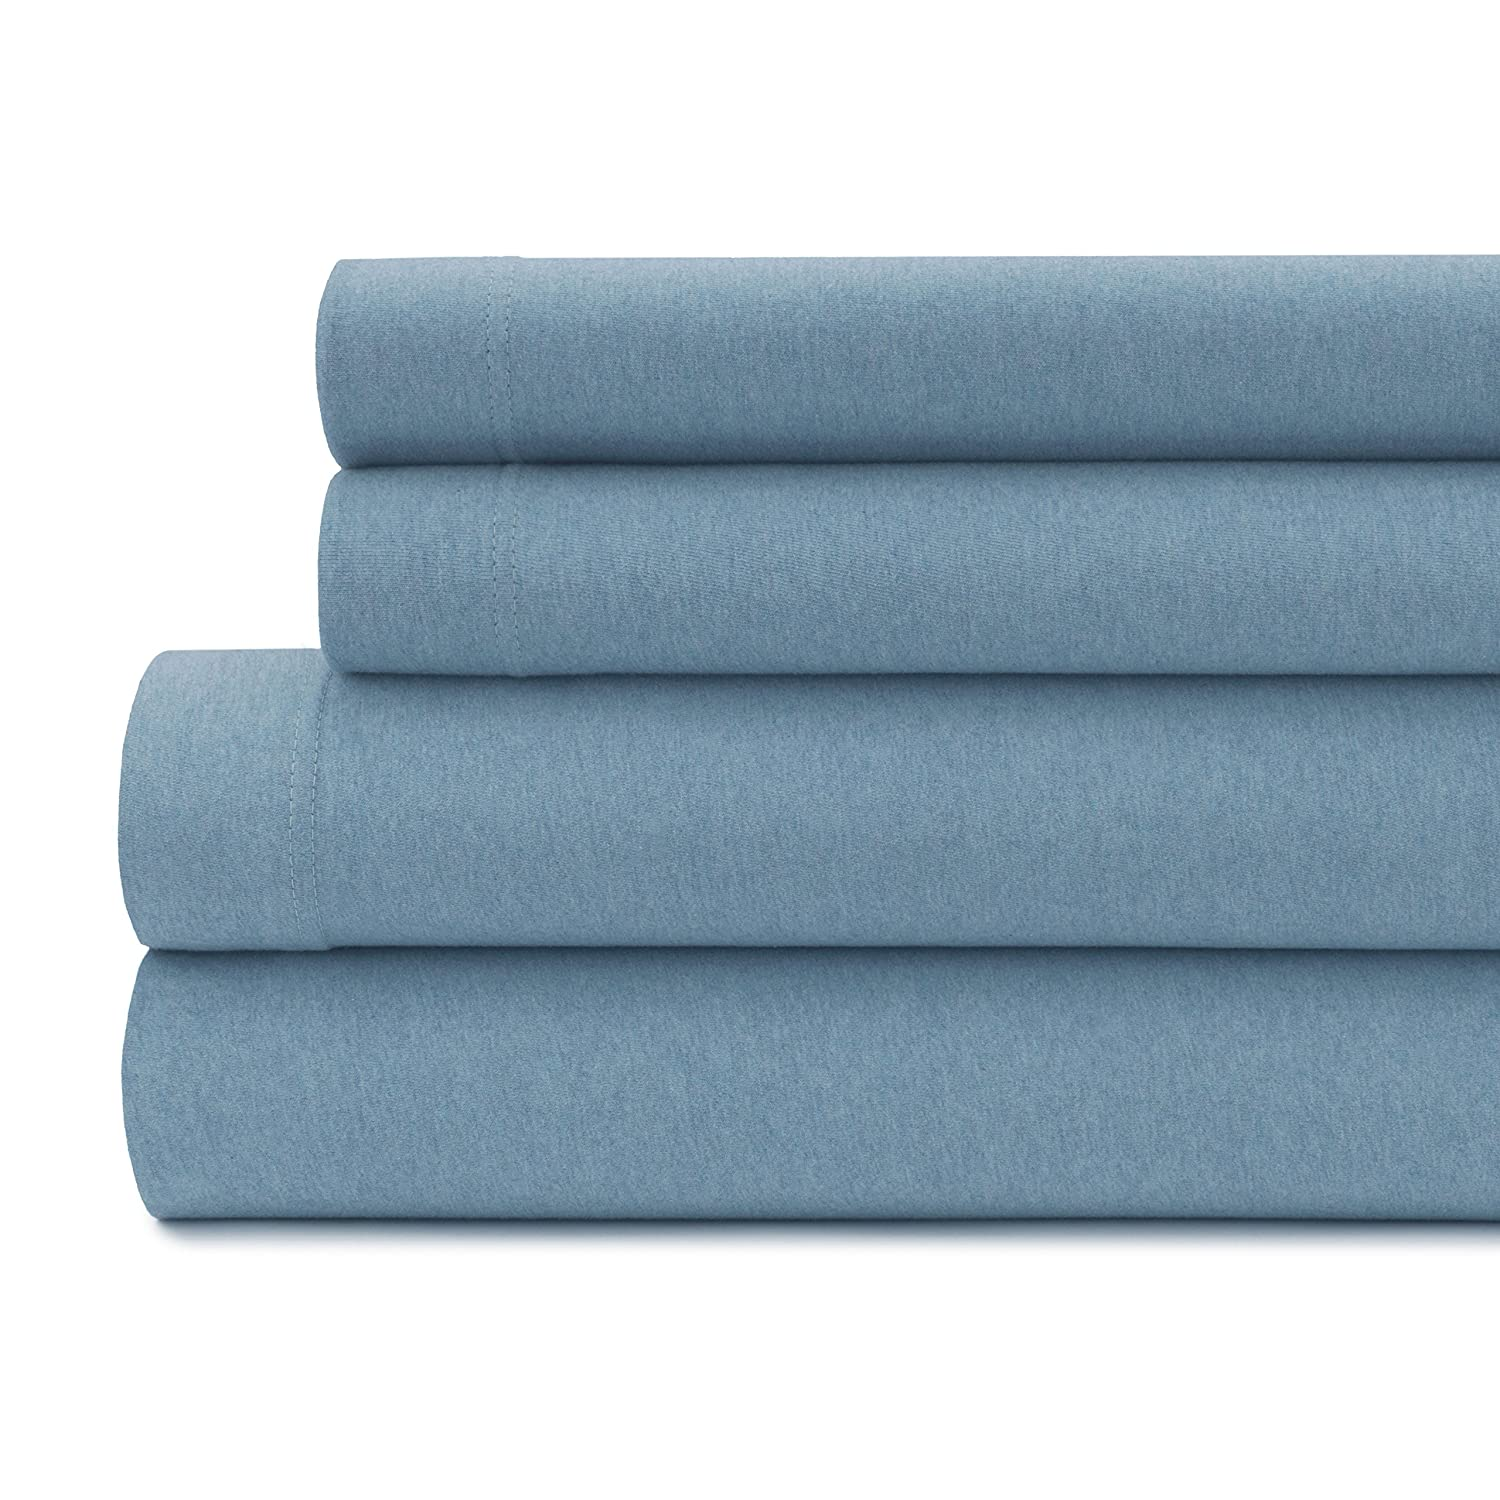 150 GSM Deep Pocket Queen, Blue Chambray Briarwood Home Jersey Sheet Set World Home Fashion 100003 Wrinkle /& Fade Resistant Yarn Dyed Heather Sheets 100/% Cotton Super Soft /& Luxurious Bedding Breathable